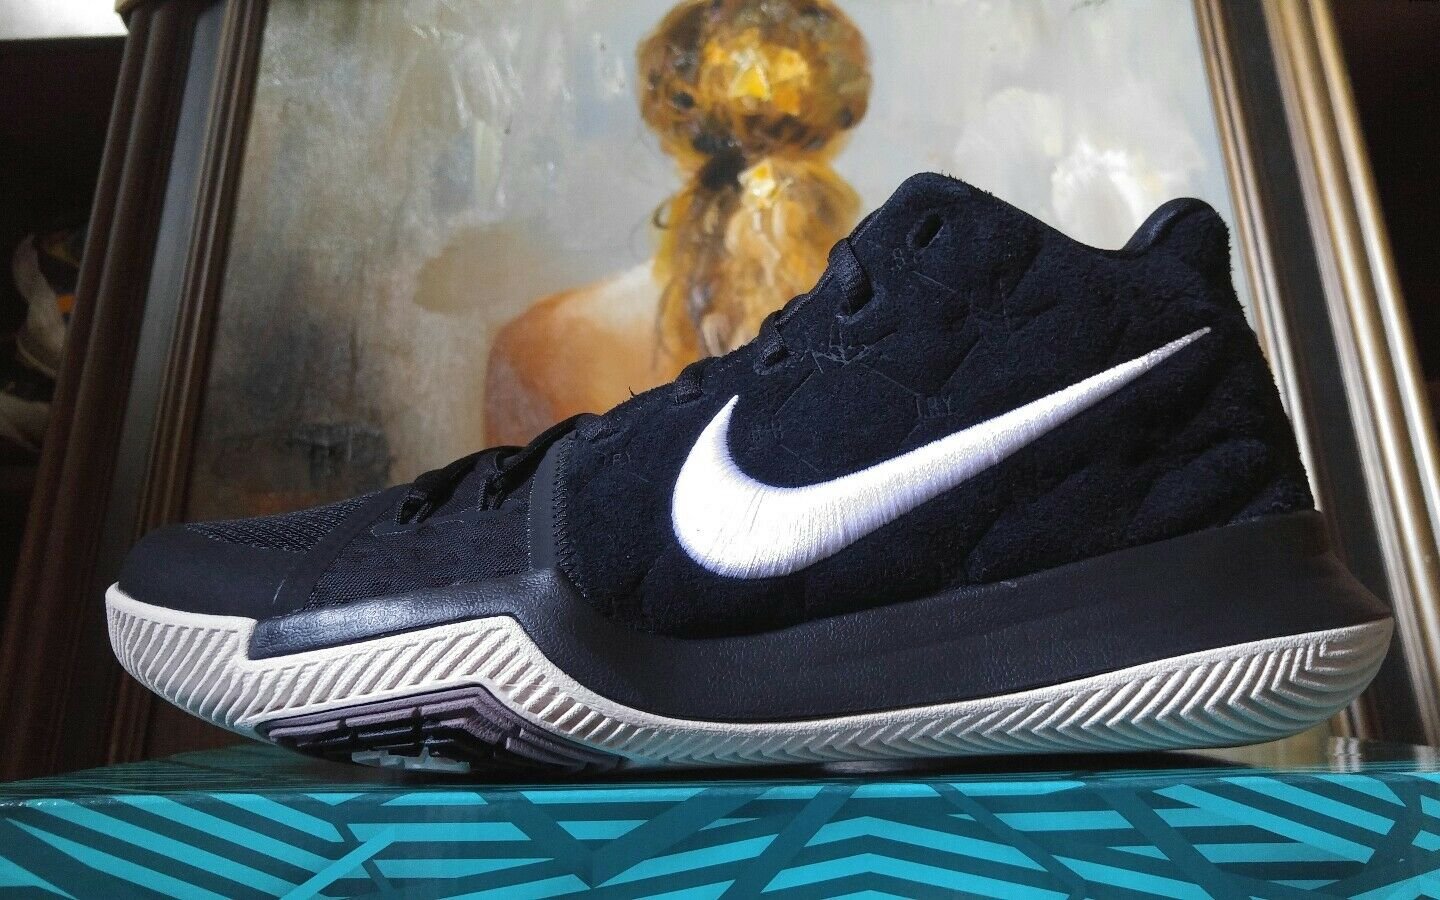 Nike Kyrie 3 size 10 10.5 11 12 13 Black suede White Silt Red